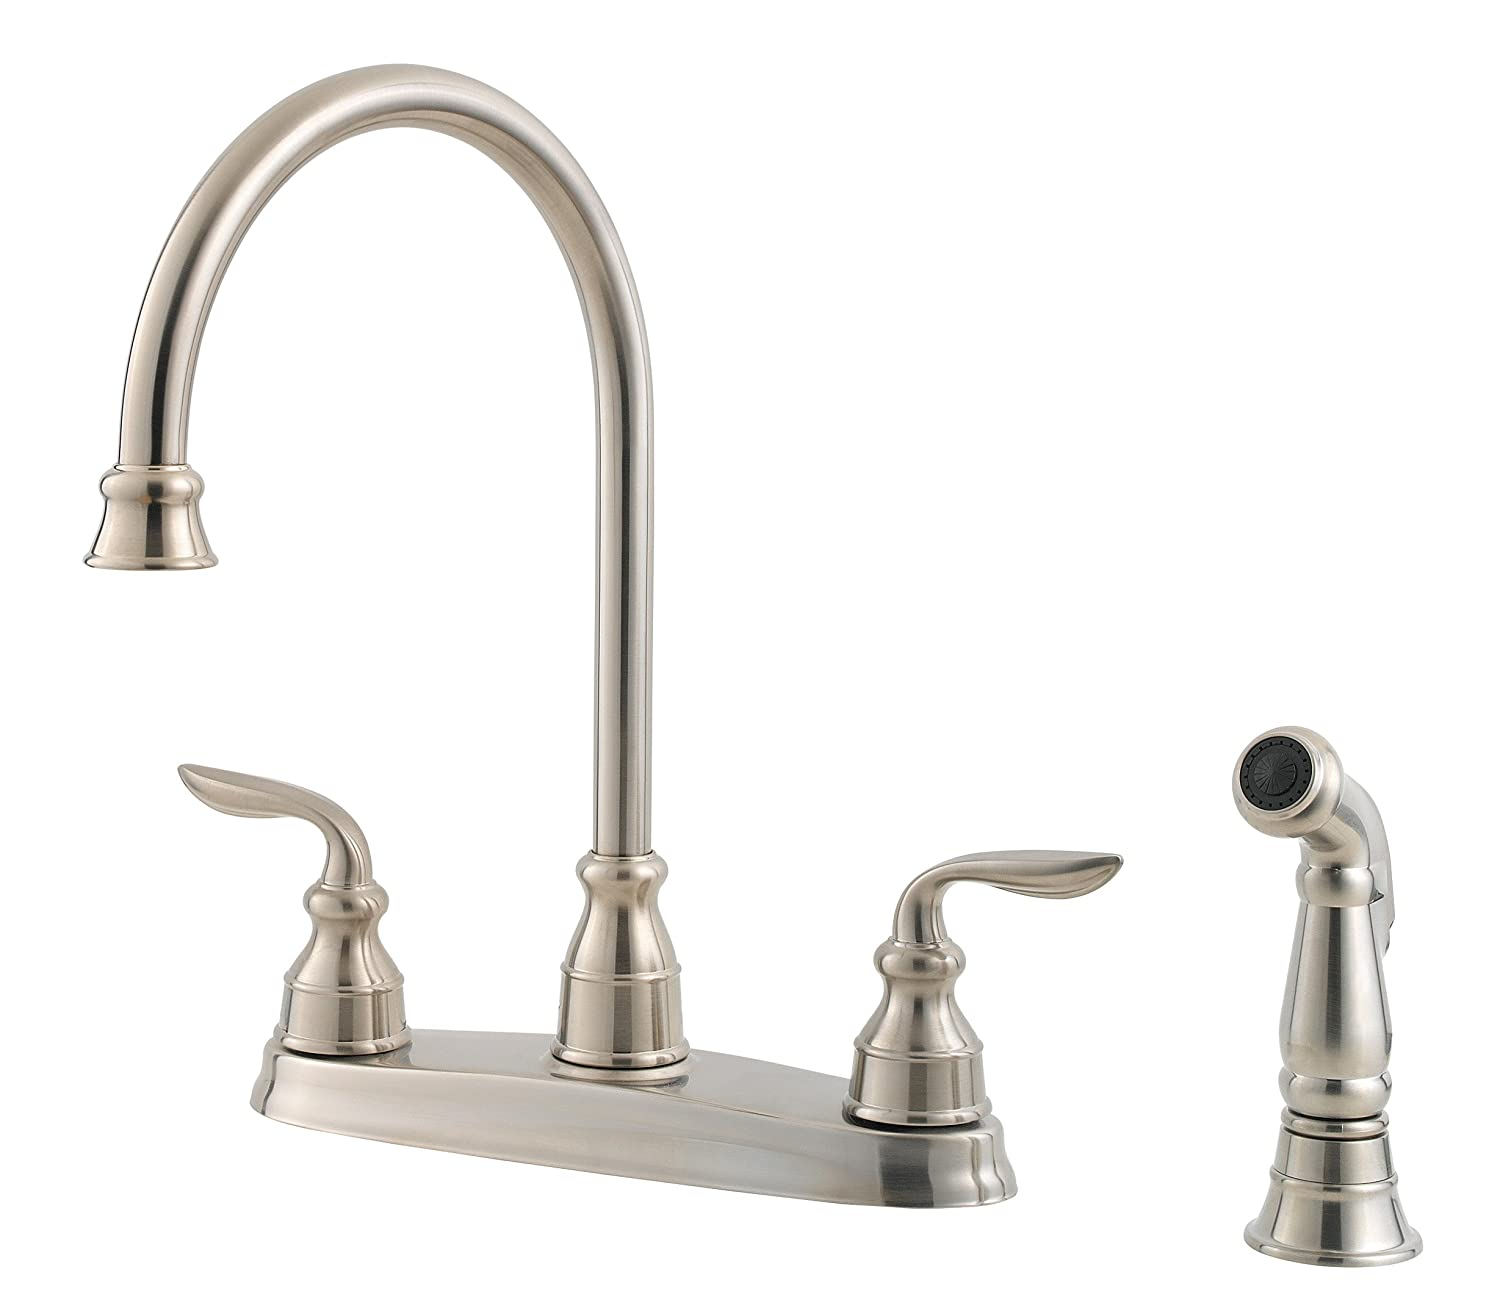 Pfister Lf0364cby Avalon 2 Handle Kitchen Faucet With Side Spray